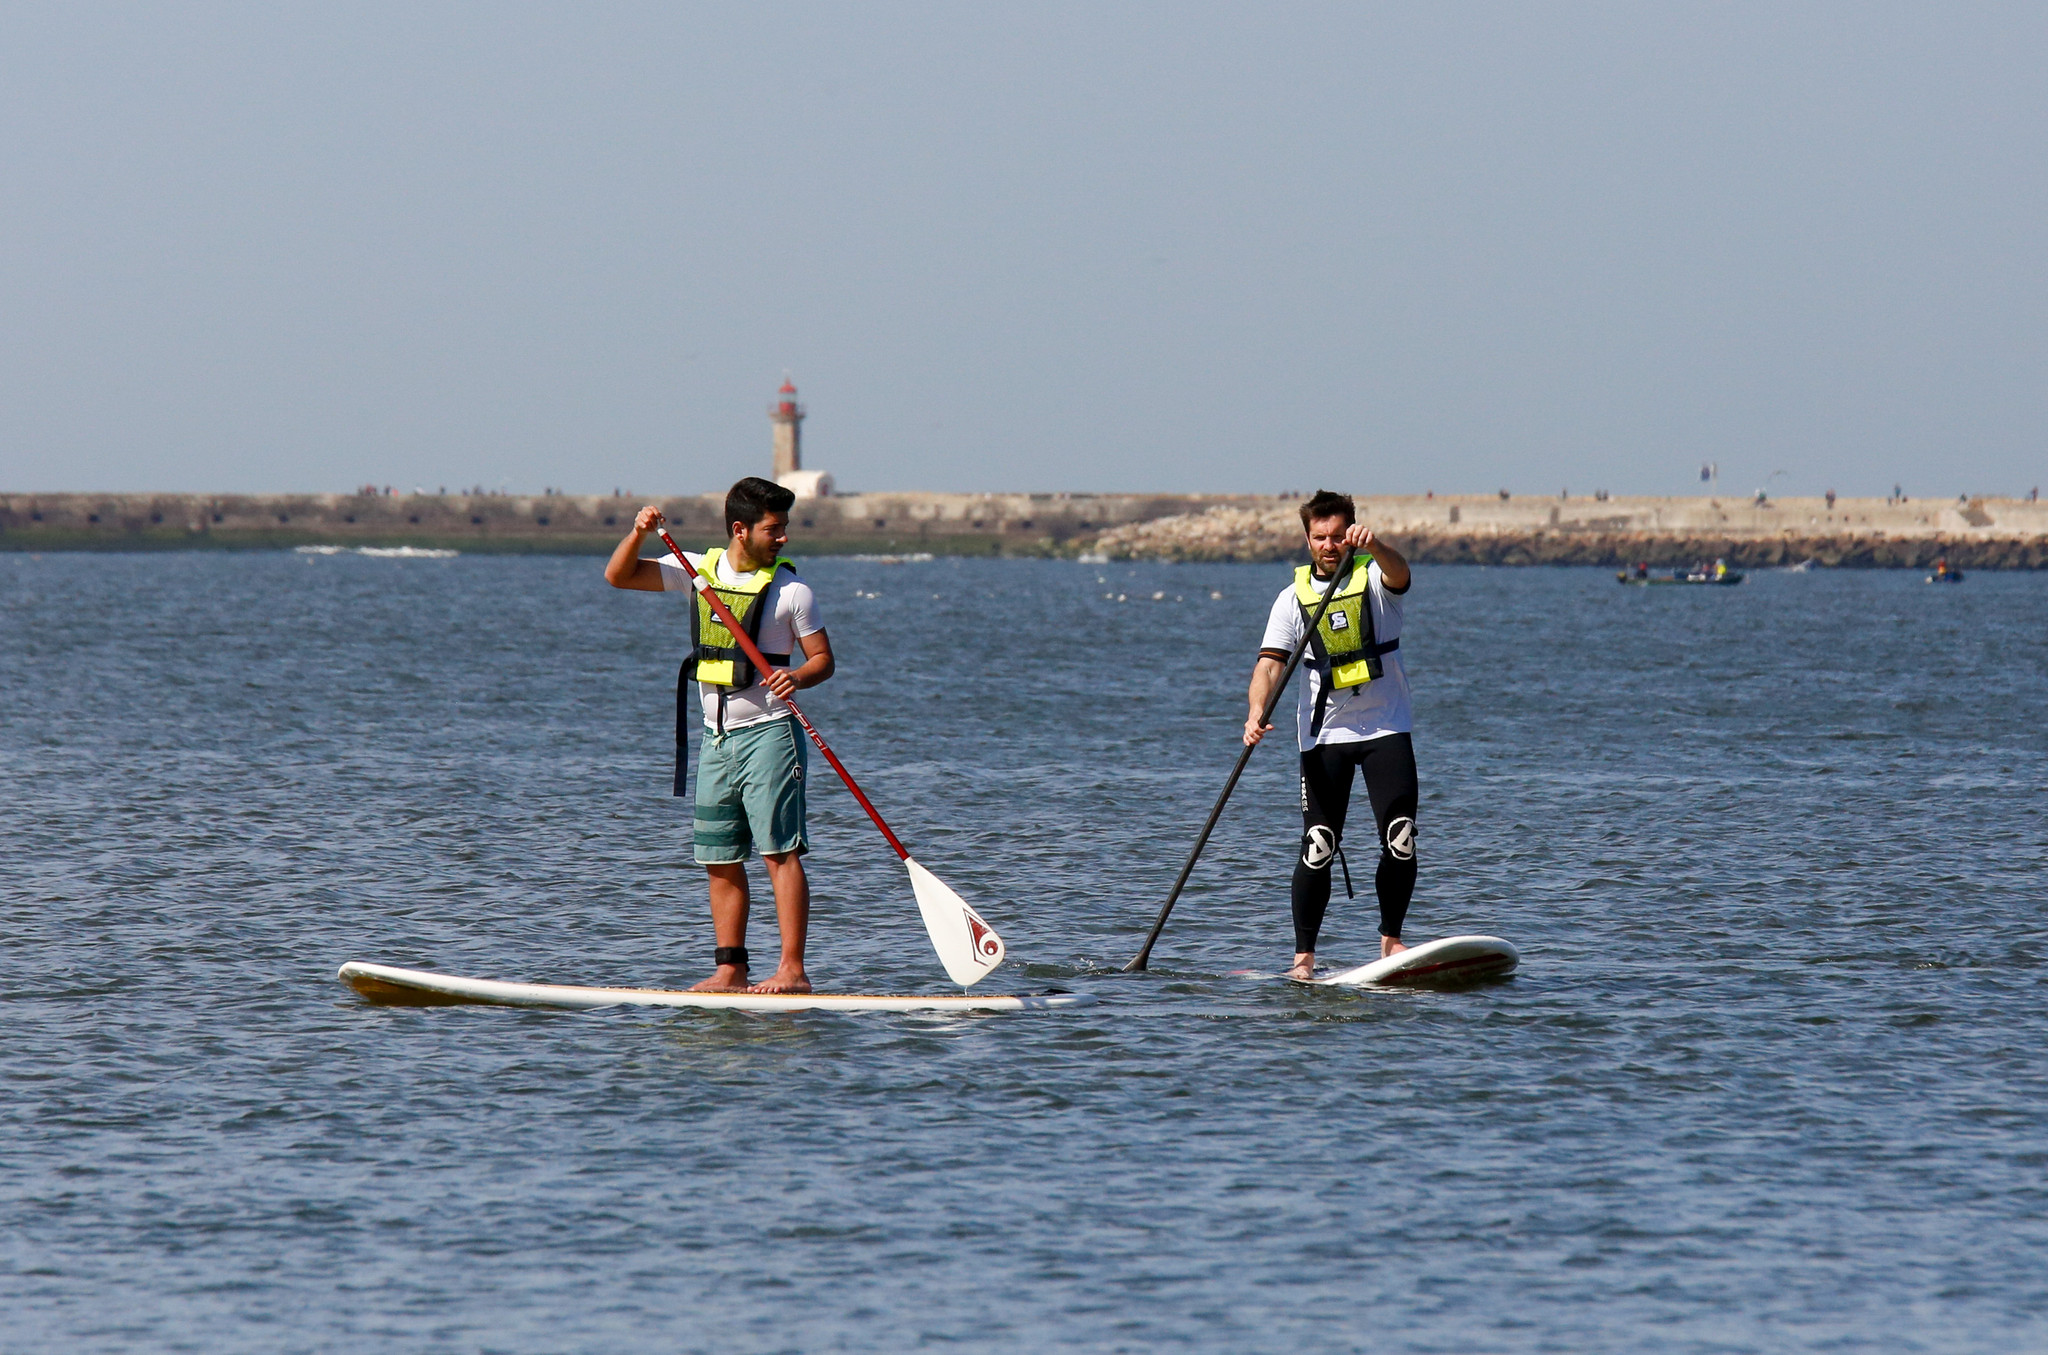 LM Stand Up Paddle 15-03-17-9-14.JPG